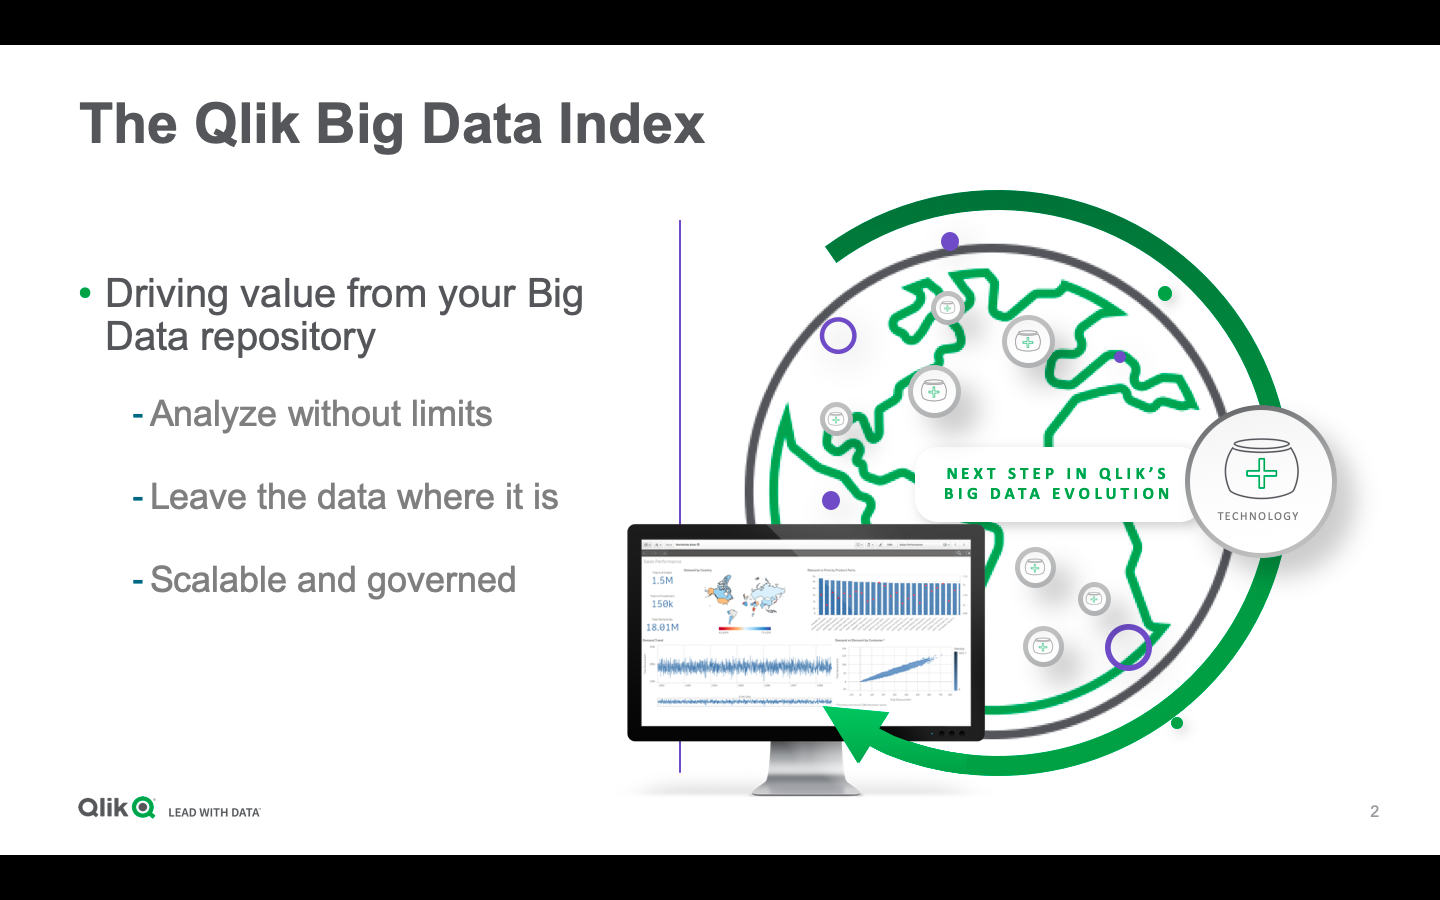 Qlik Big Data Index